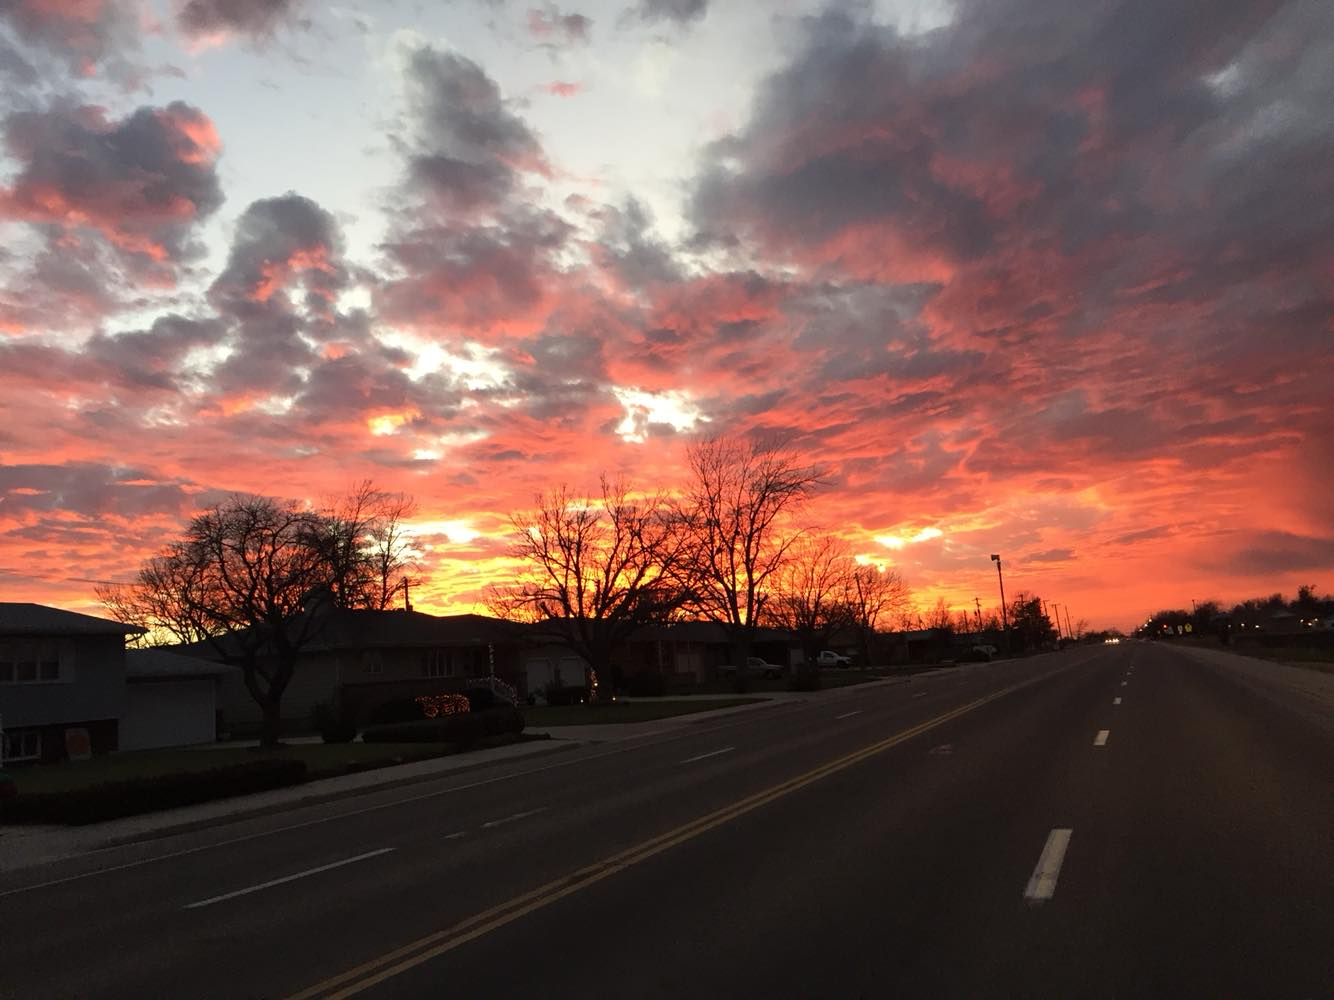 Just another stunning Kansas sunset, this one seen from 24th Street in Great Bend. (Photo by J. Schafer)